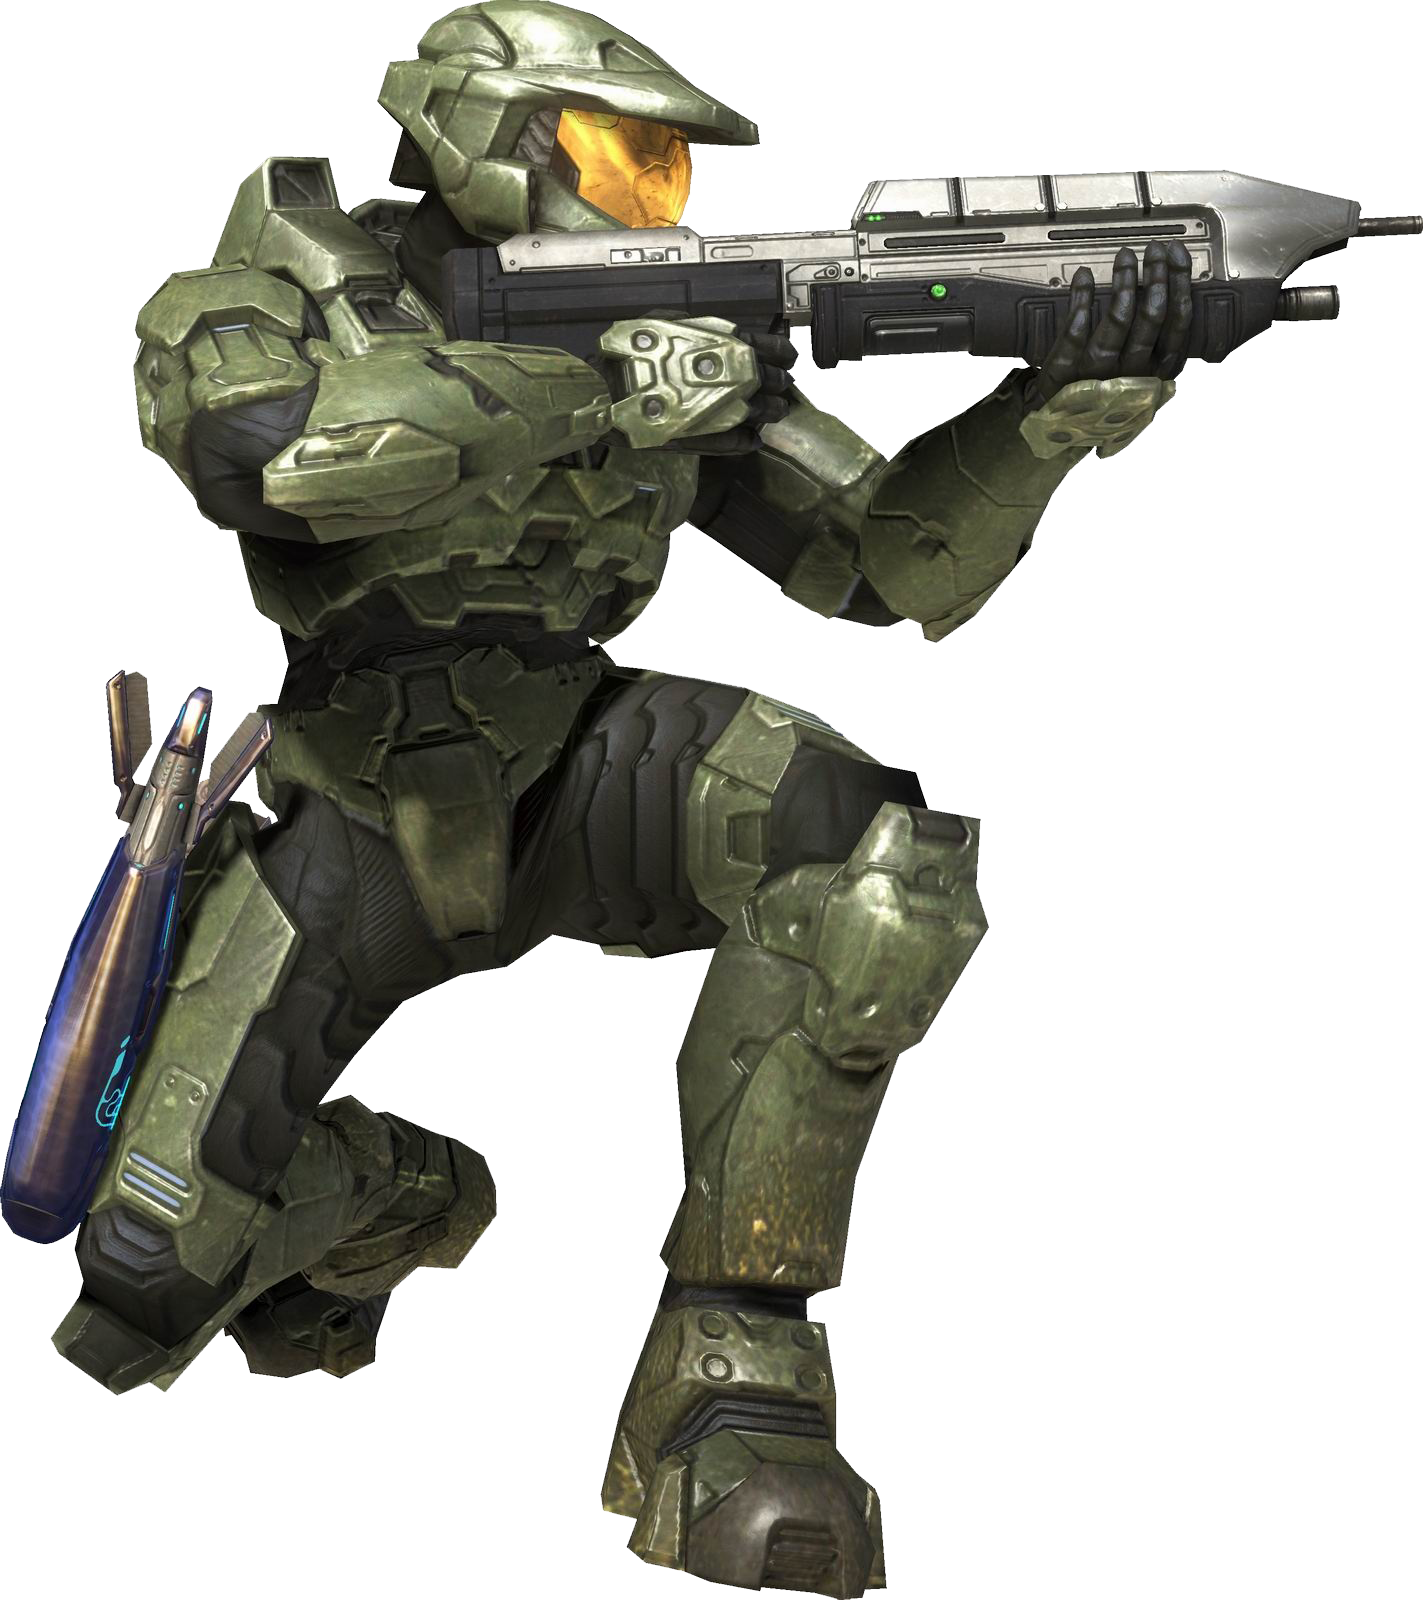 Download Master Chief PNG Photos For Designing Projects.